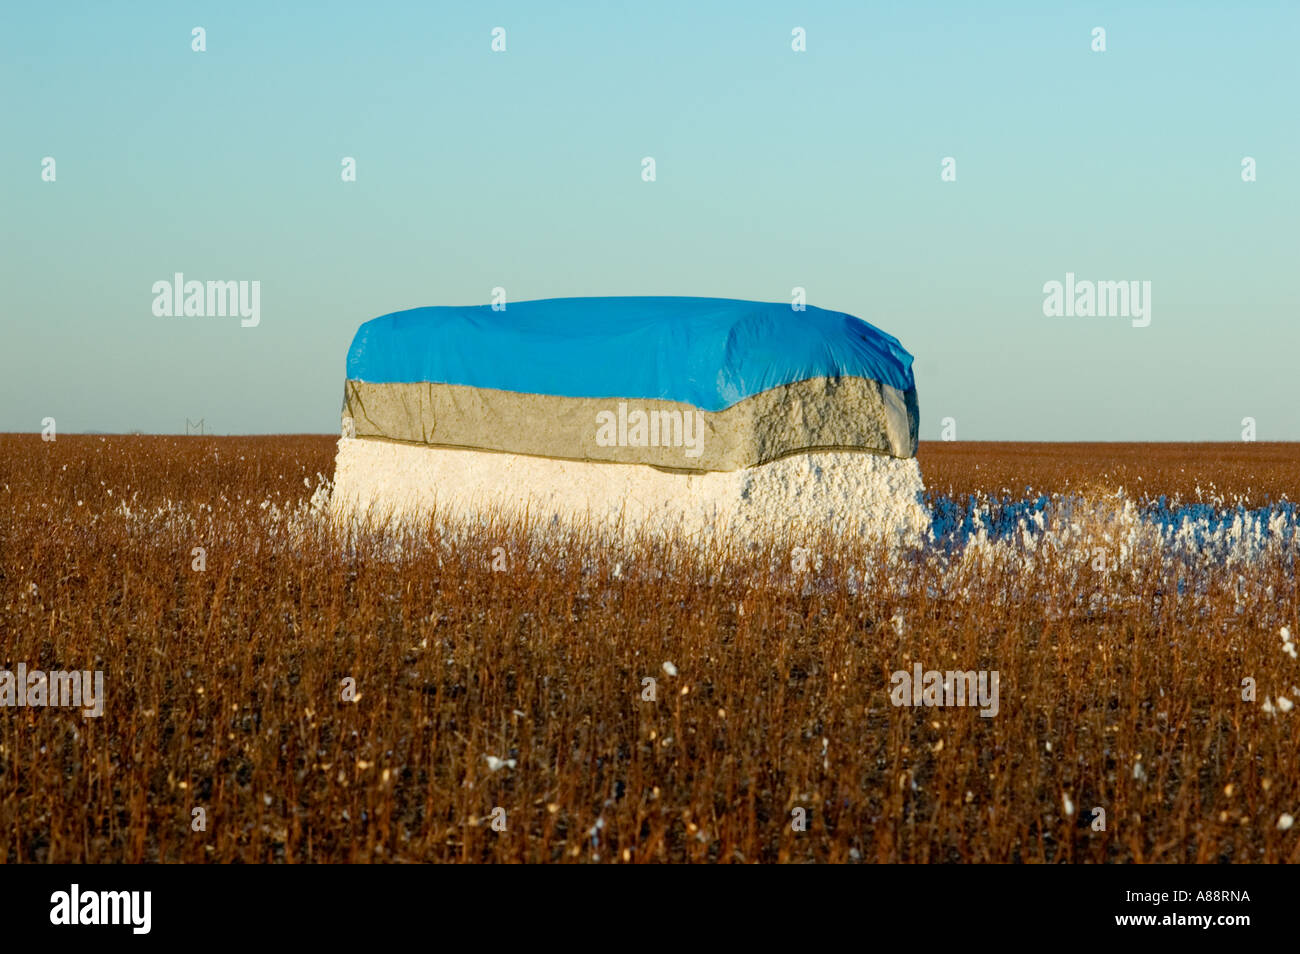 Bale of Cotton in a Field in Grandfield, Oklahoma - Stock Image